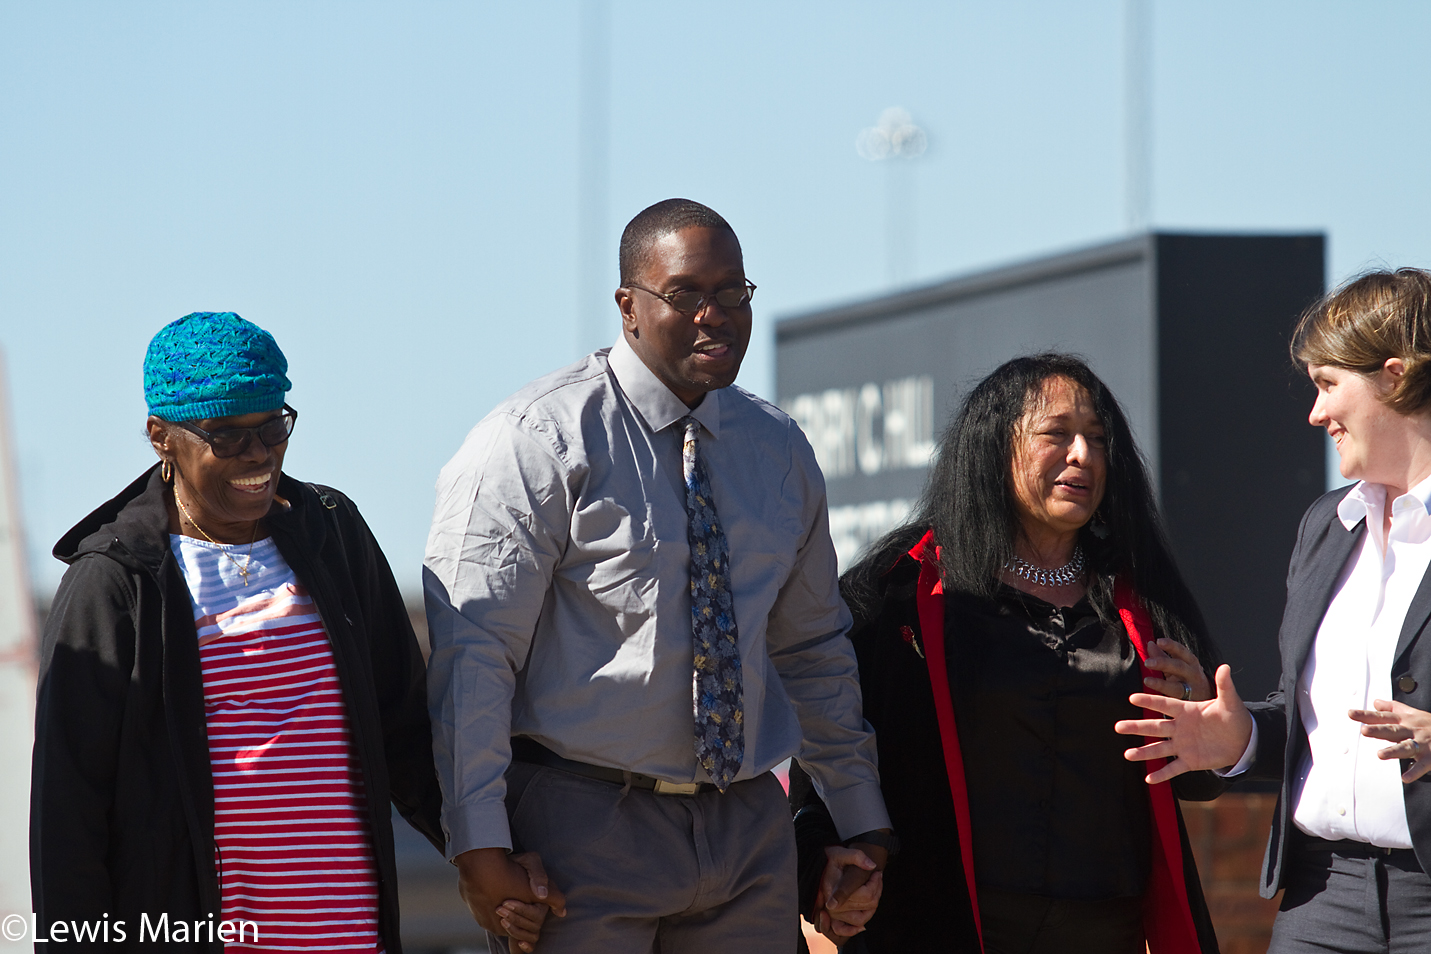 Shawn Whirl, center, walks out of the Henry C. Hill Correctional Center in Galesburg, Ill., with his mother Erma to his left,his fiancée Gloria Castaneda to his right and attorney Tara Thompson, far right,on Wednesday, Oct. 14, 2015. In 1990, Whirl was tortured by a Chicago detective working under disgraced former Chicago police commander Jon Burge. He was tortured until he confessed for the robbery and murder of a Chicago cabdriver, and in 1991 he was sentenced to 60 years in prison. However, in August 2015 his murder conviction was overturned by a unanimous appellate court and Whirl was cleared of all charges on Oct. 13, 2015.